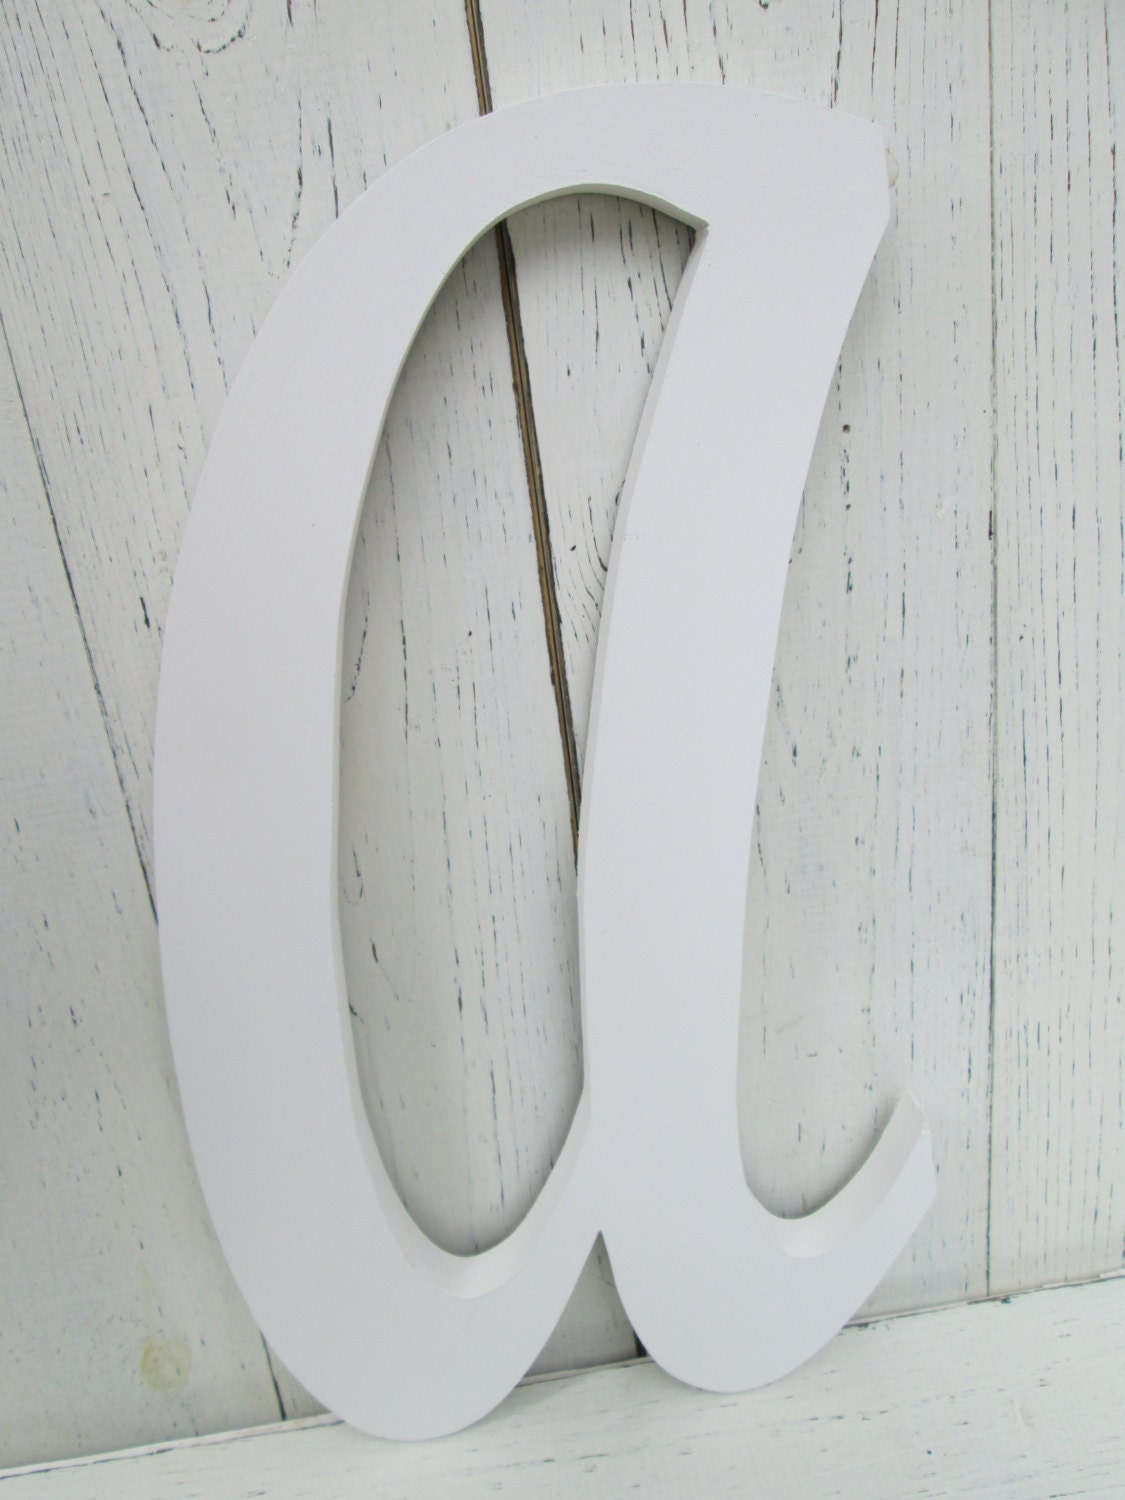 Large wall letters nursery letters decorative wall decor for Large wall letters for nursery